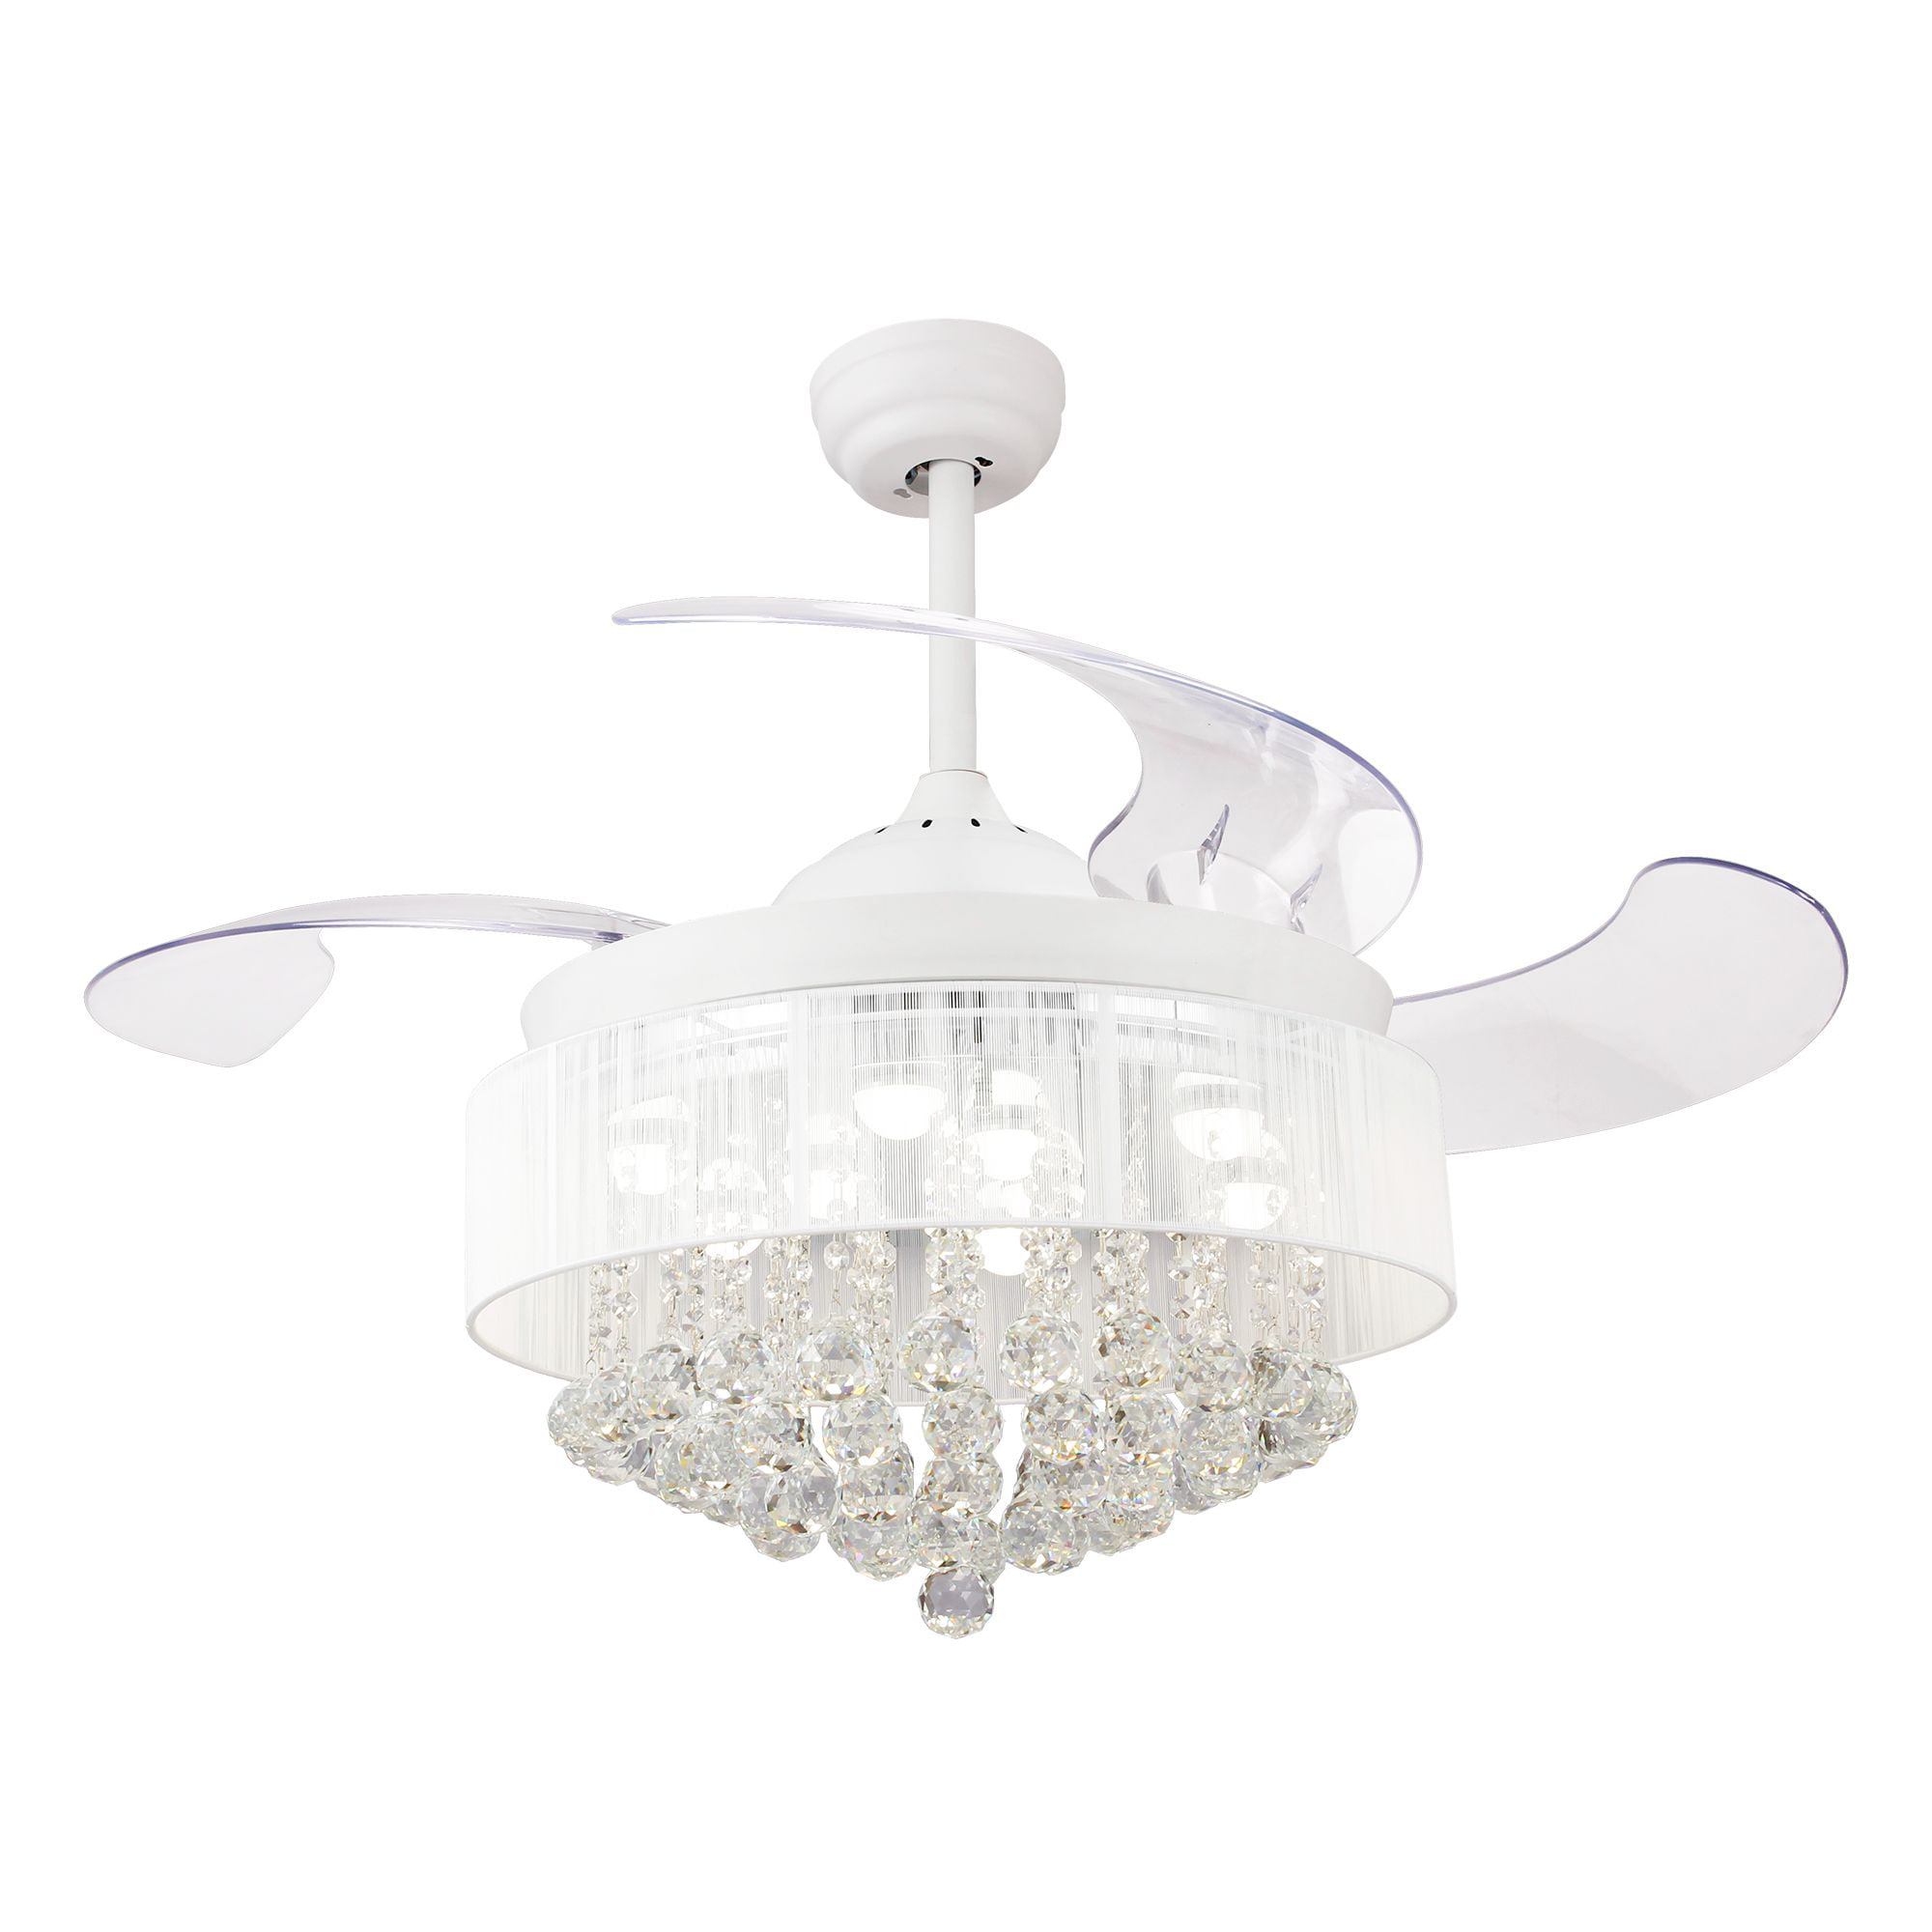 "Chandelier Fan: Ceiling Fans With Lights 42"" Modern White Ceiling Fan"